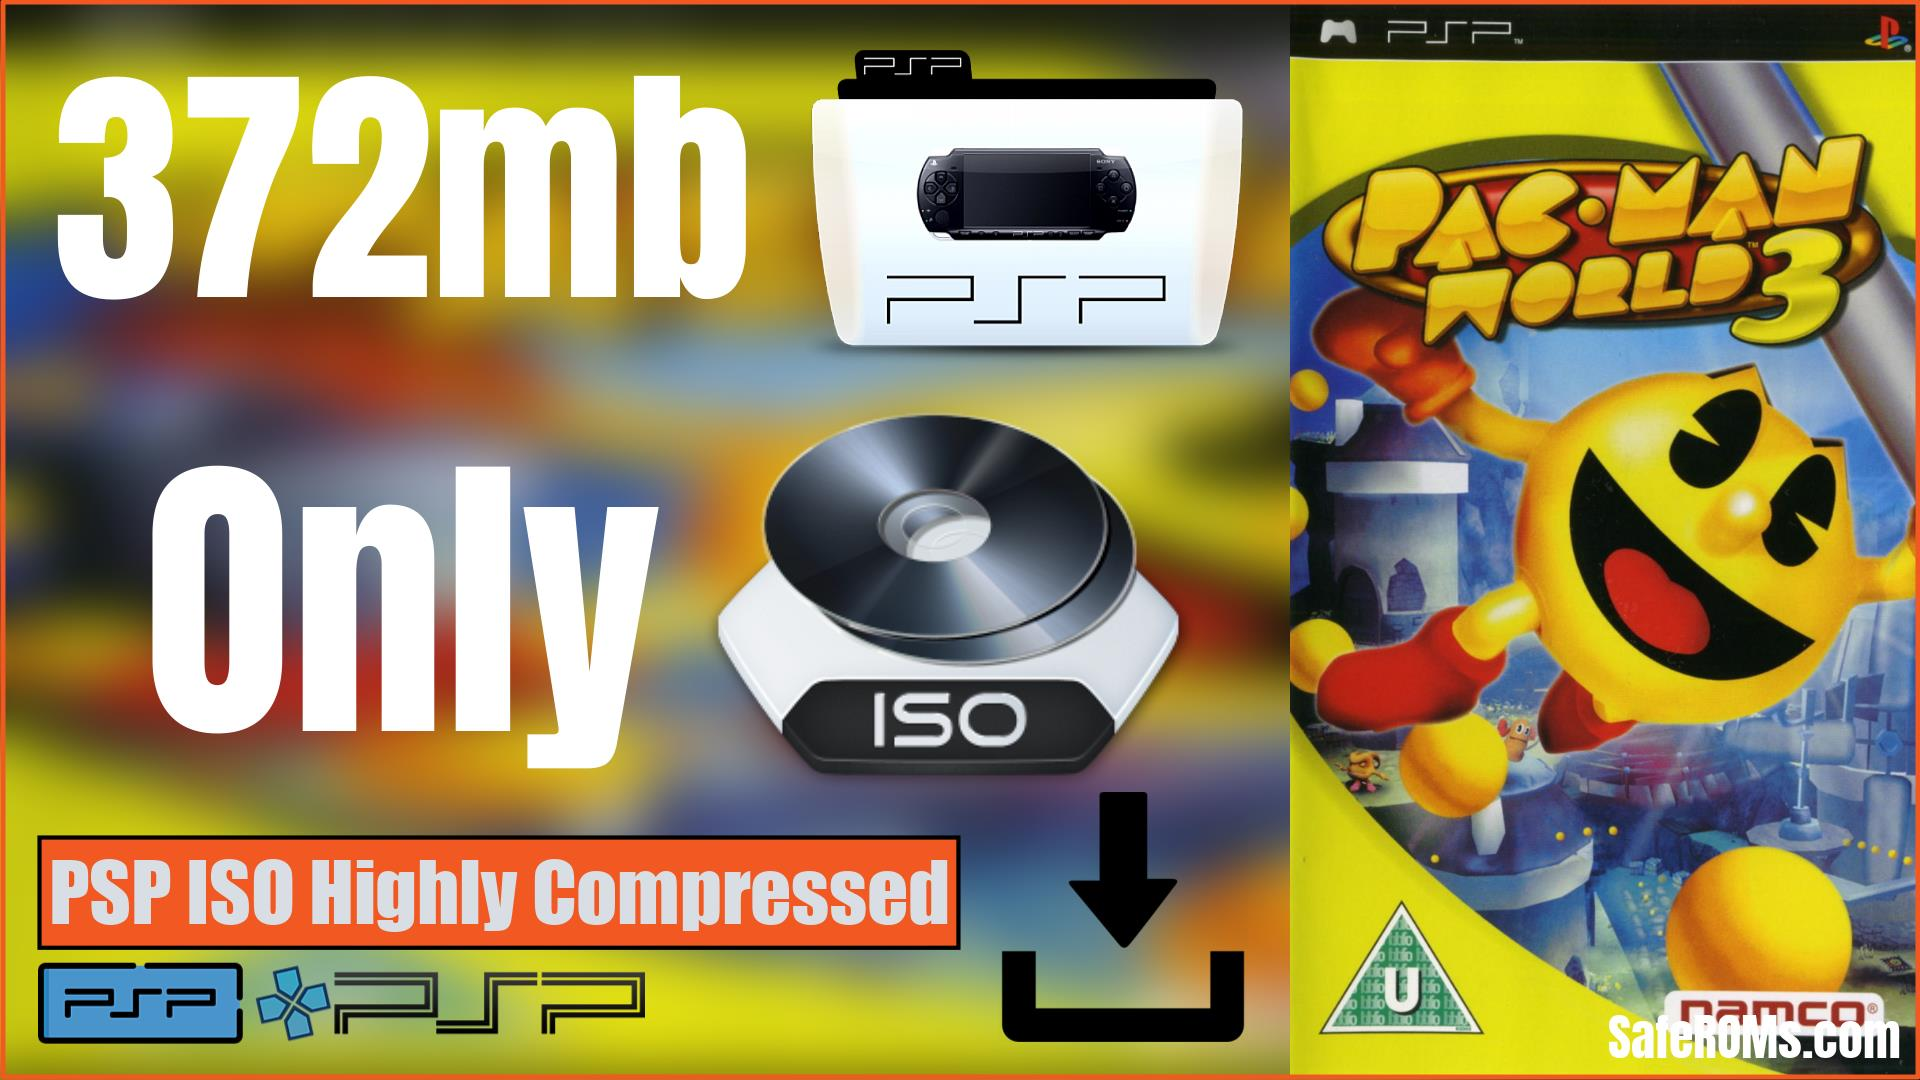 Pac-Man World 3 PSP ISO Highly Compressed Download